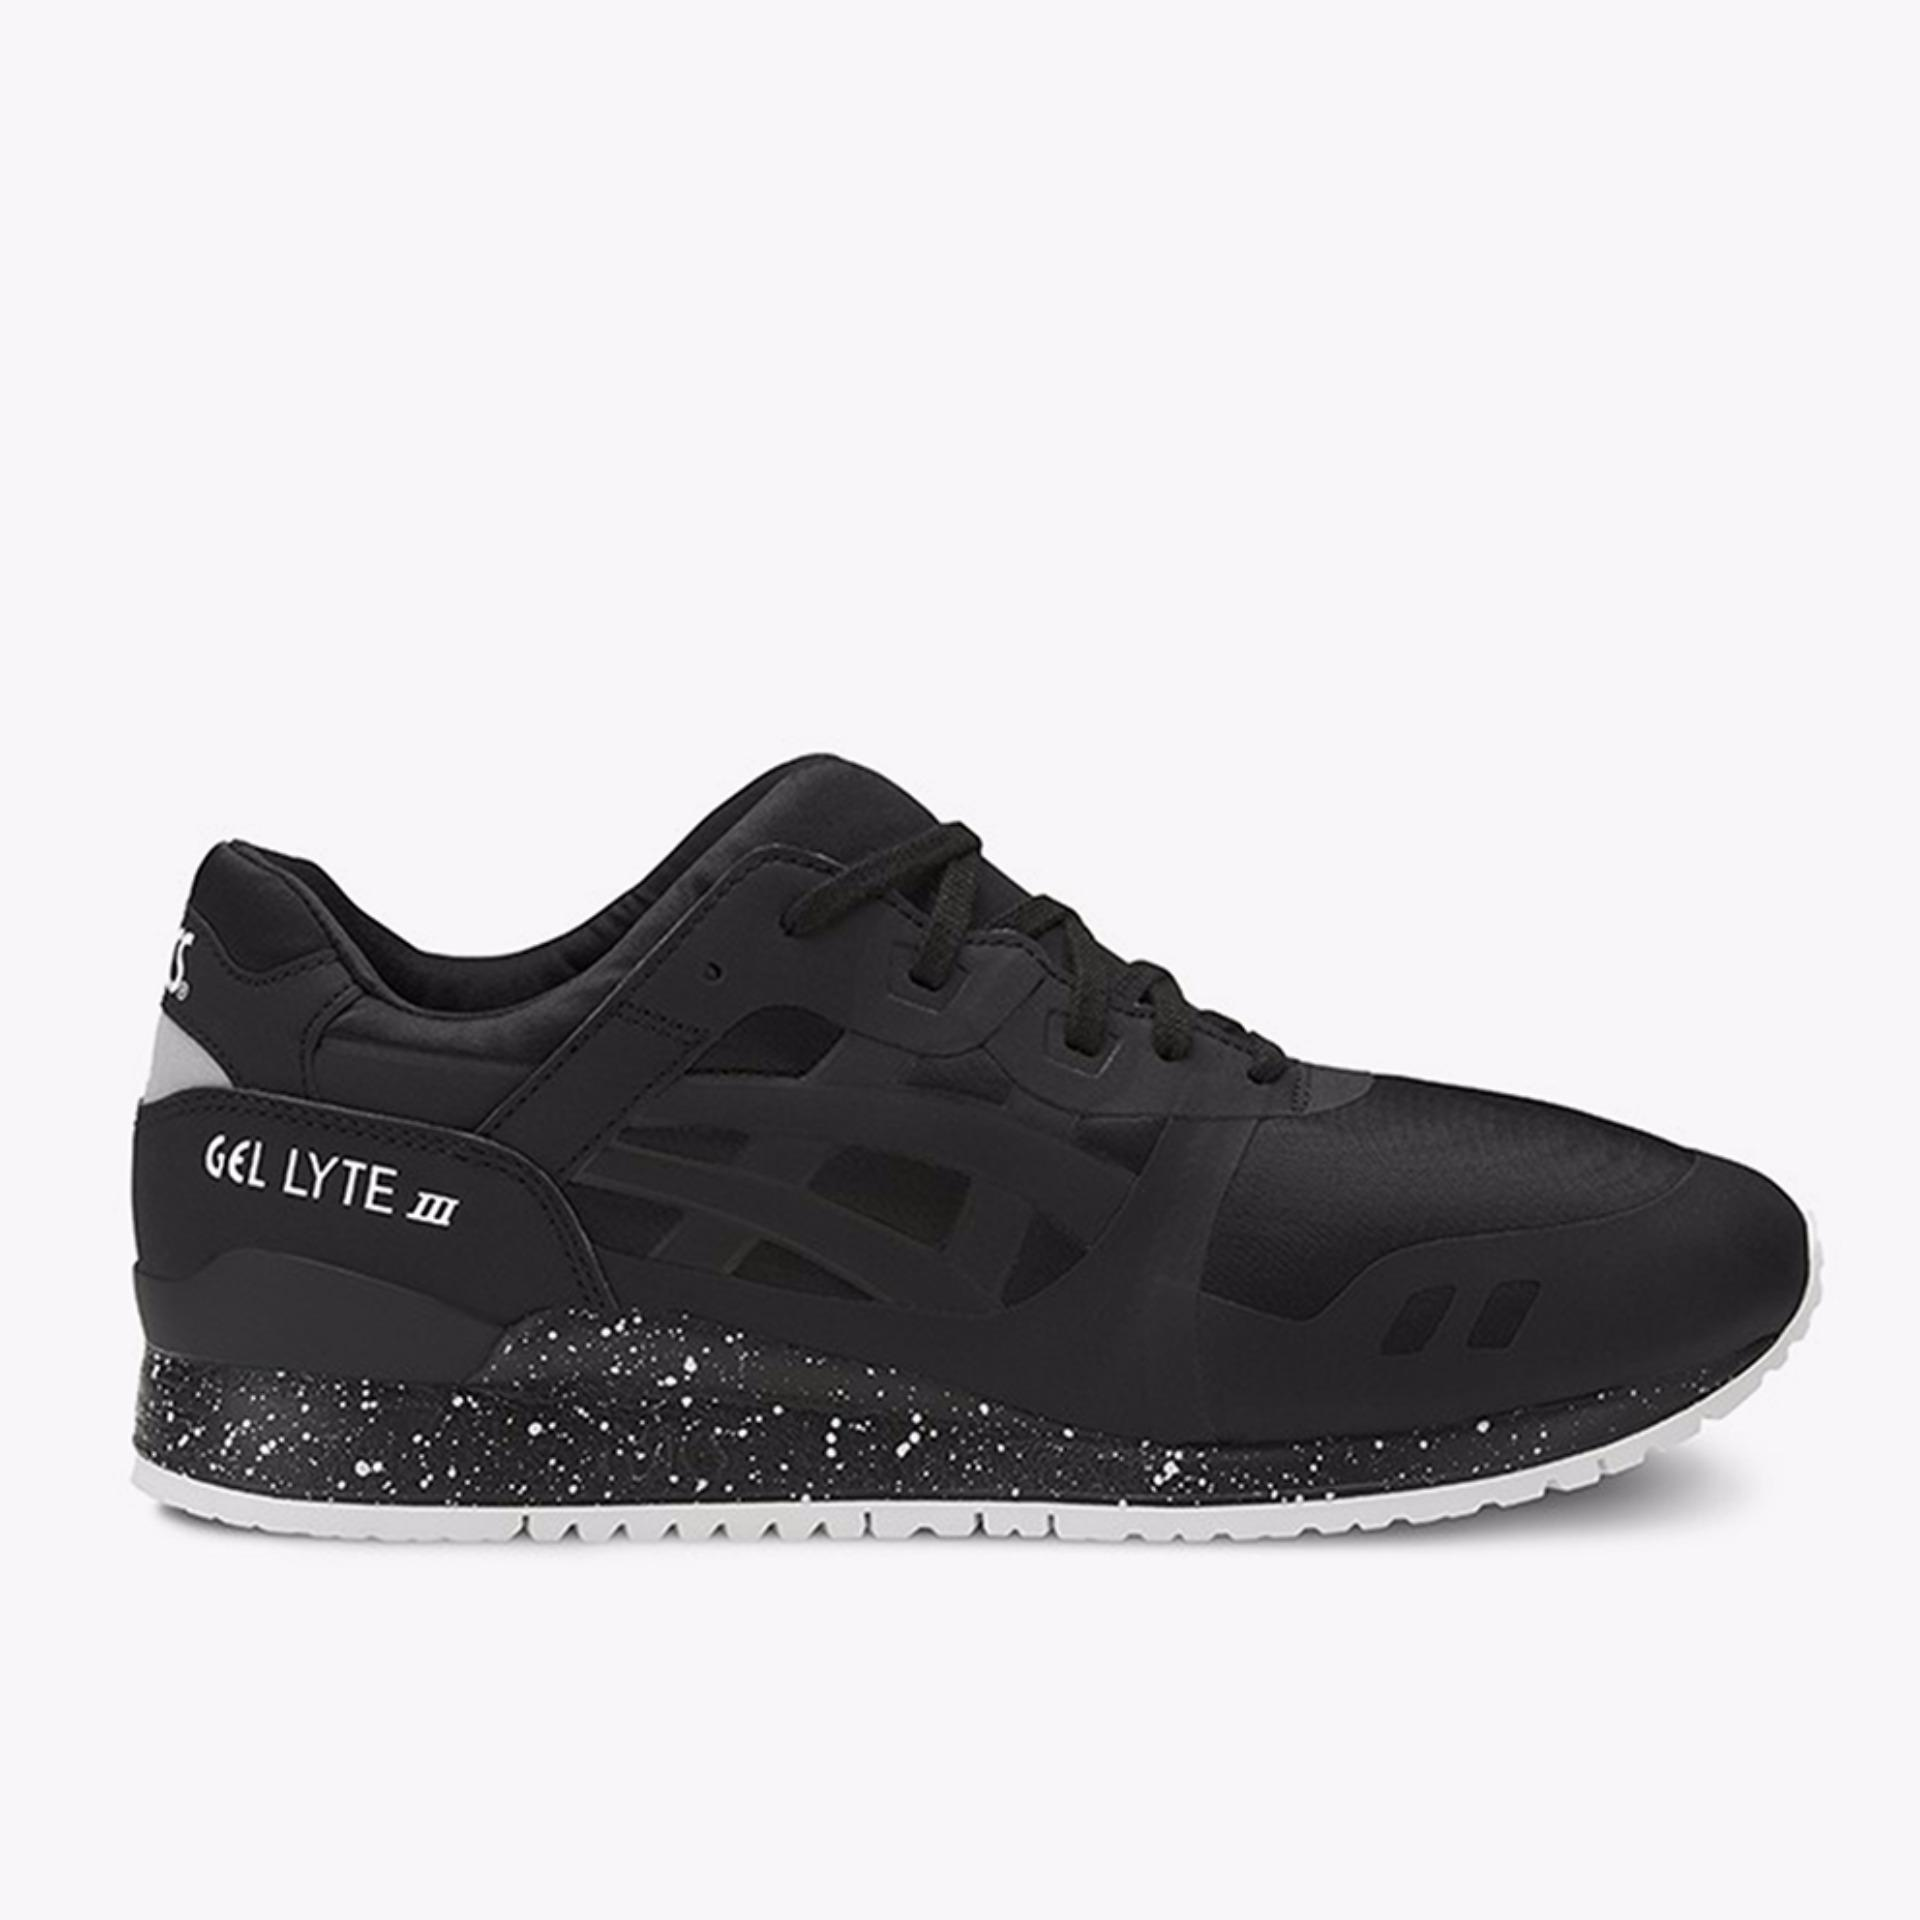 Asics Tiger GEL-LYTE III NS Unisex Sneakers Shoes - Hitam